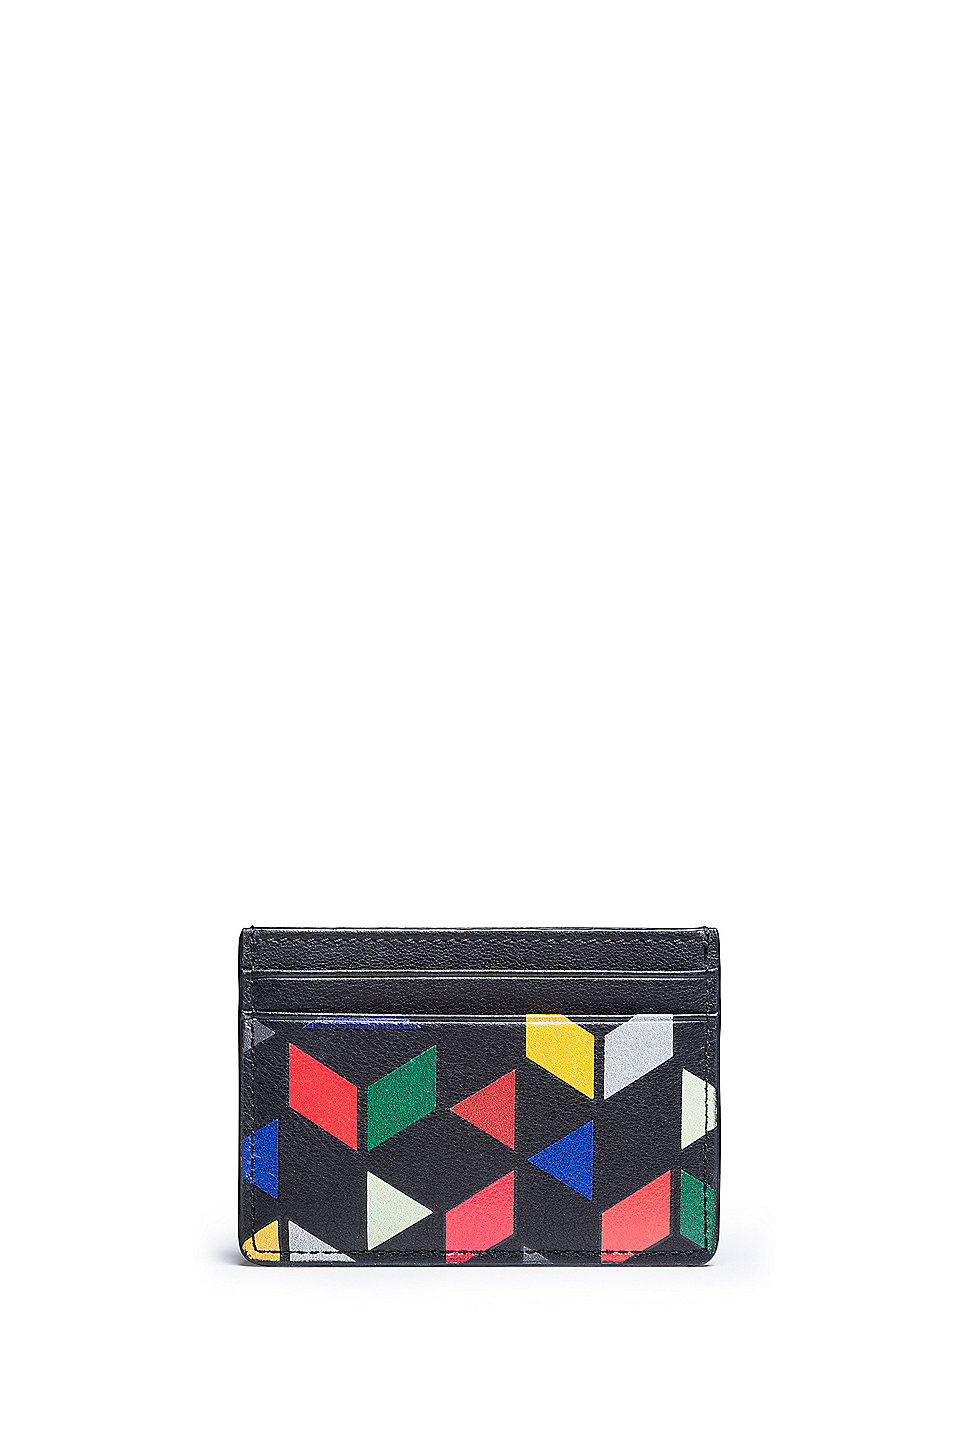 Card Holders by HUGO BOSS | Convenience meets style